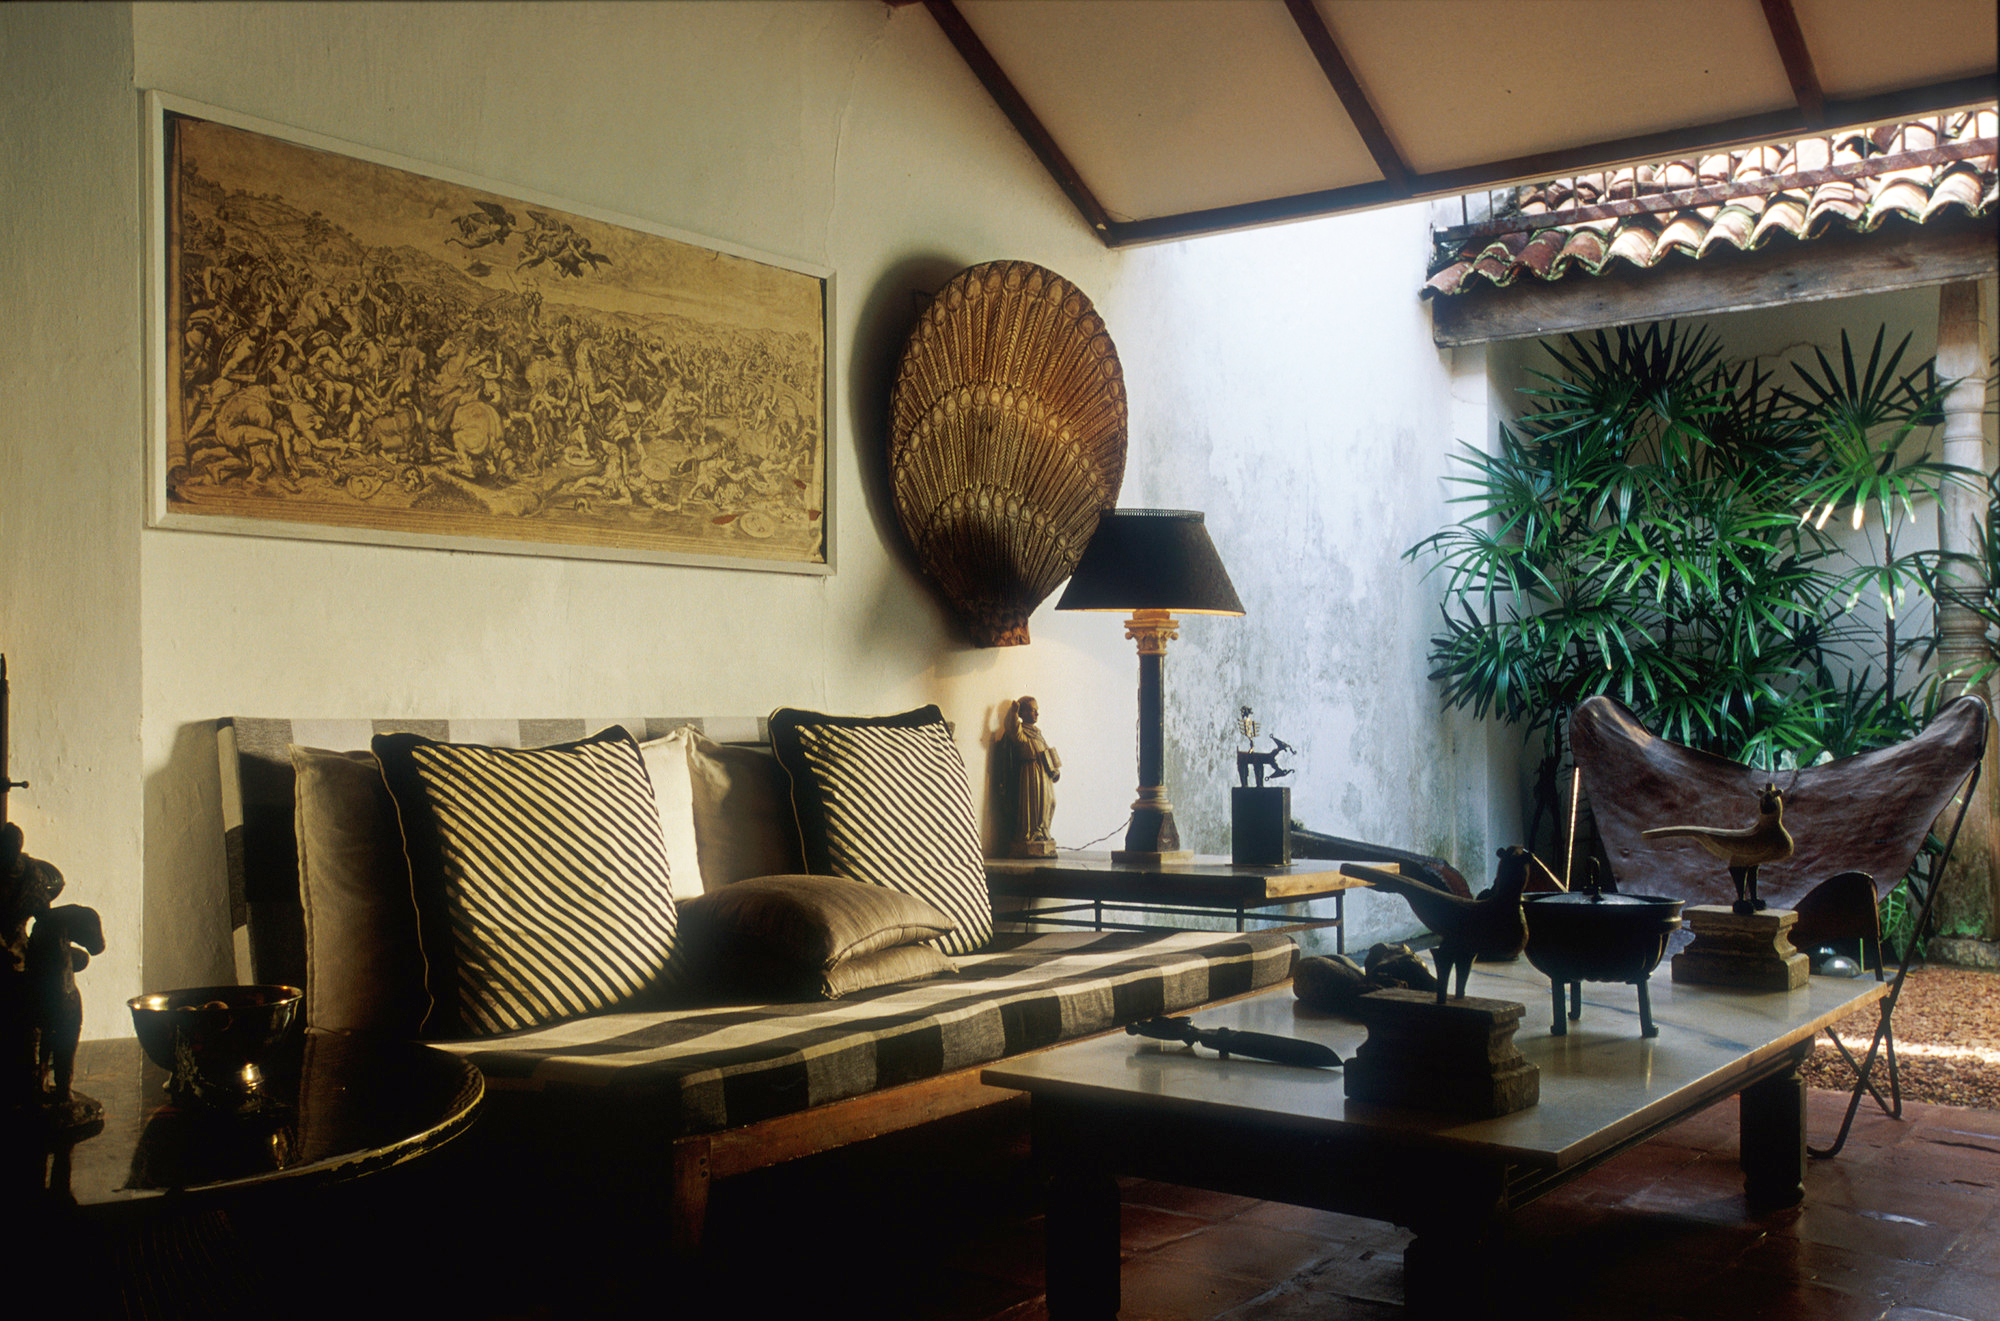 11_-_Sitting_Area_in_at_the_33rd_Lane_-_Bawa_Residence.